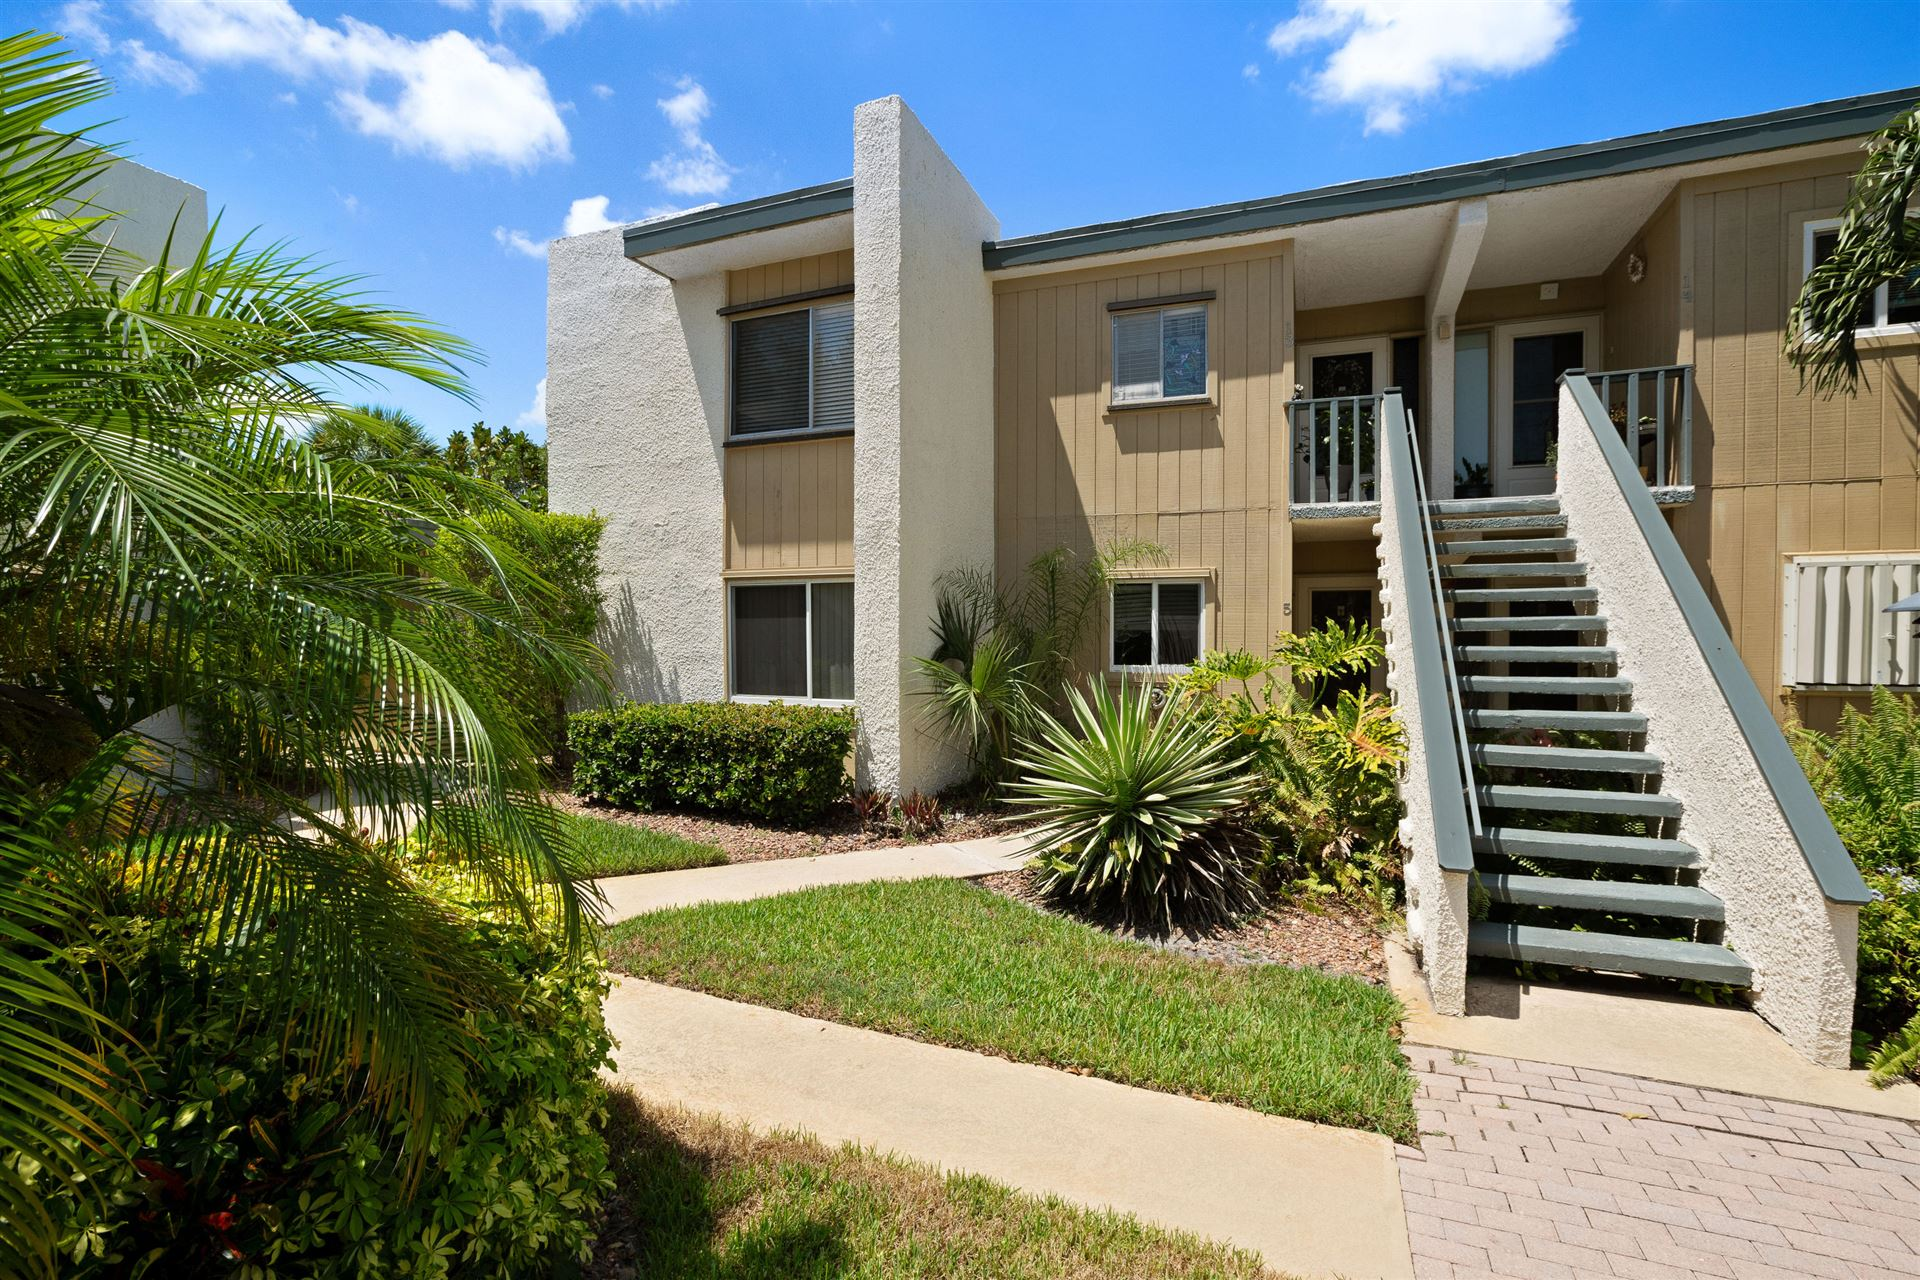 Photo of 1510 NE 12th Terrace #5, Jensen Beach, FL 34957 (MLS # RX-10638049)